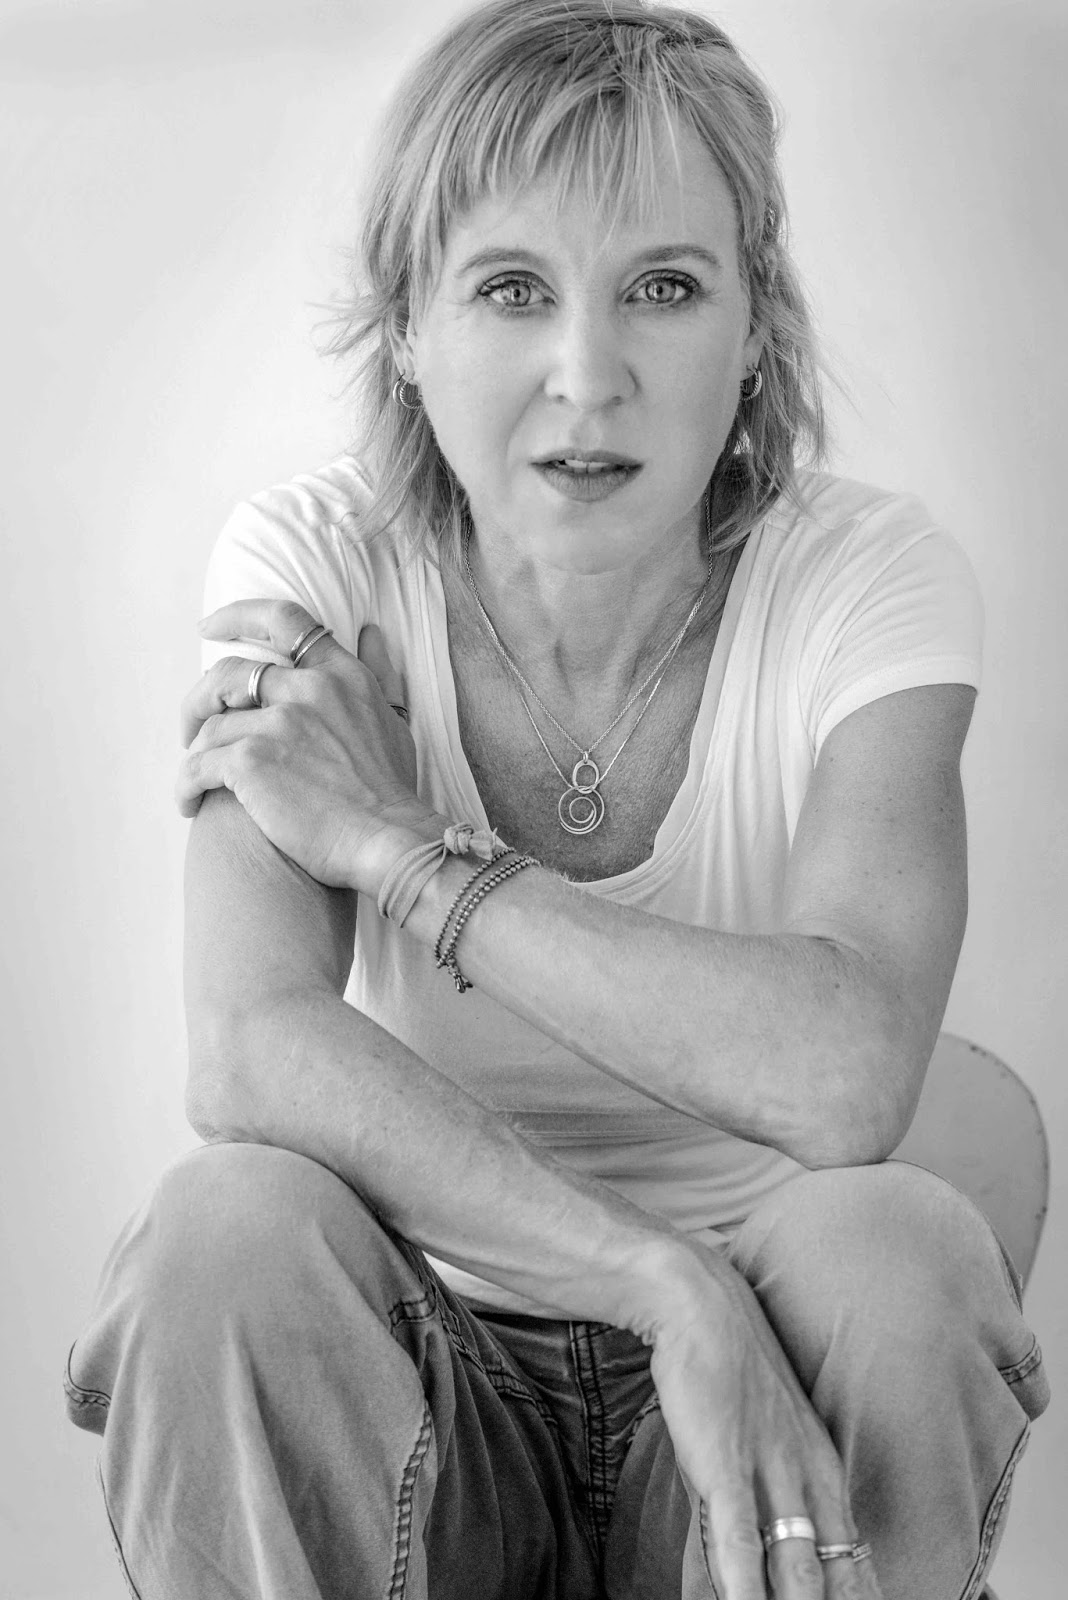 A Pessimist Is Never Disappointed October 2016 Andrew Smith Dusty Blue Jeans Biru 38 Wonderland My Review Of The New Book And Cd Release From Kristin Hersh Throwing Muses 50 Foot Wave